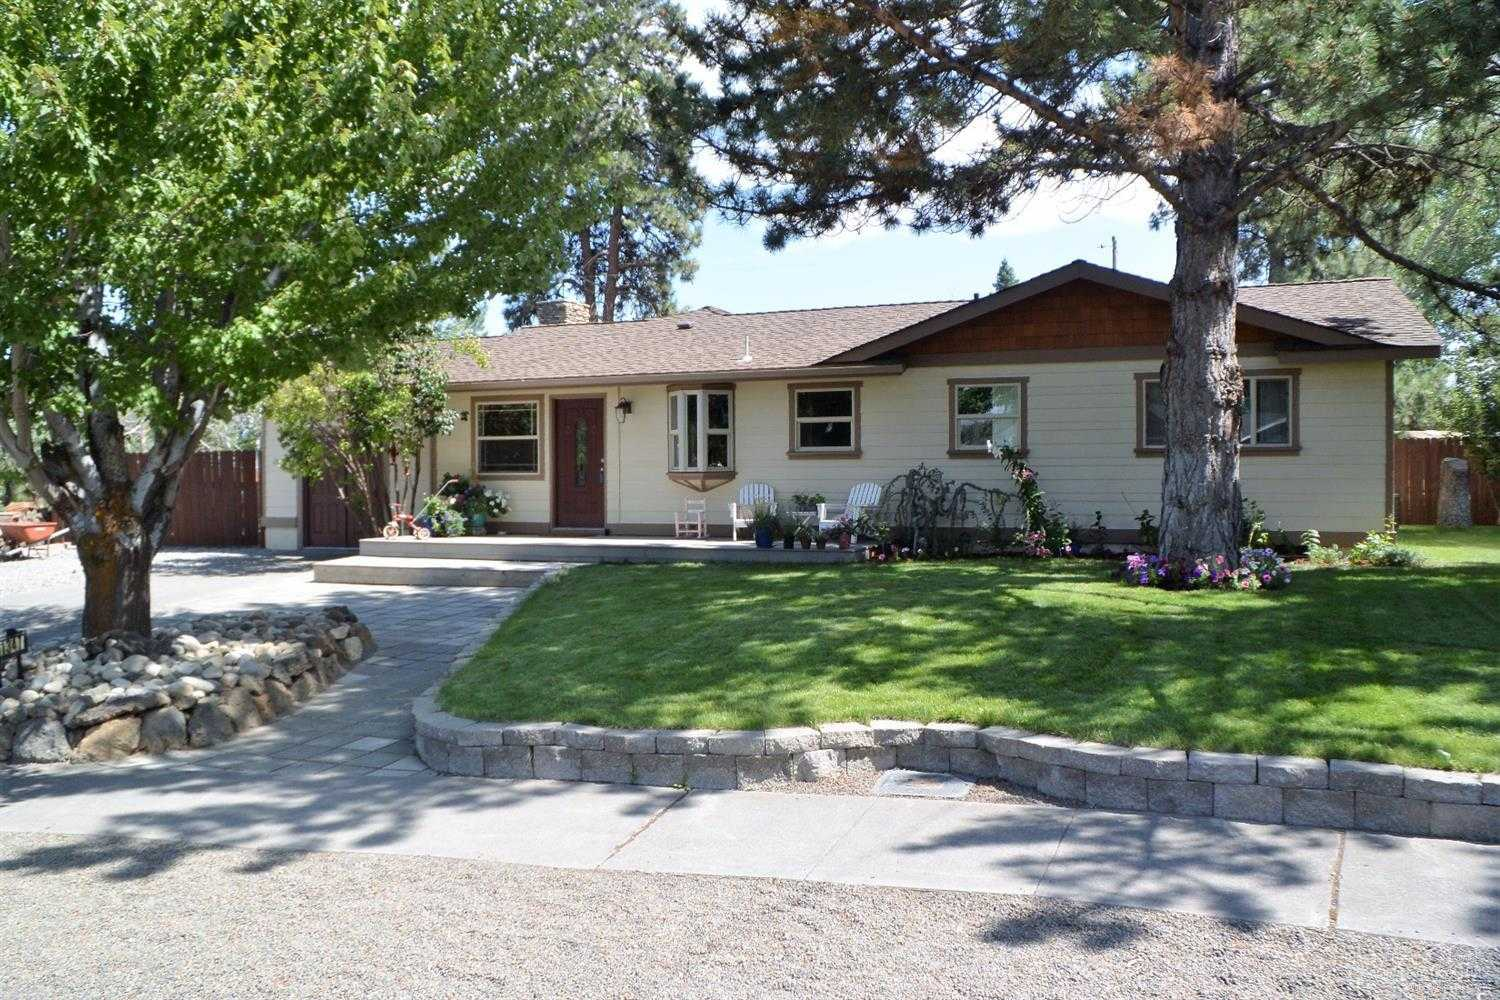 $389,000 - 3Br/2Ba -  for Sale in Bend